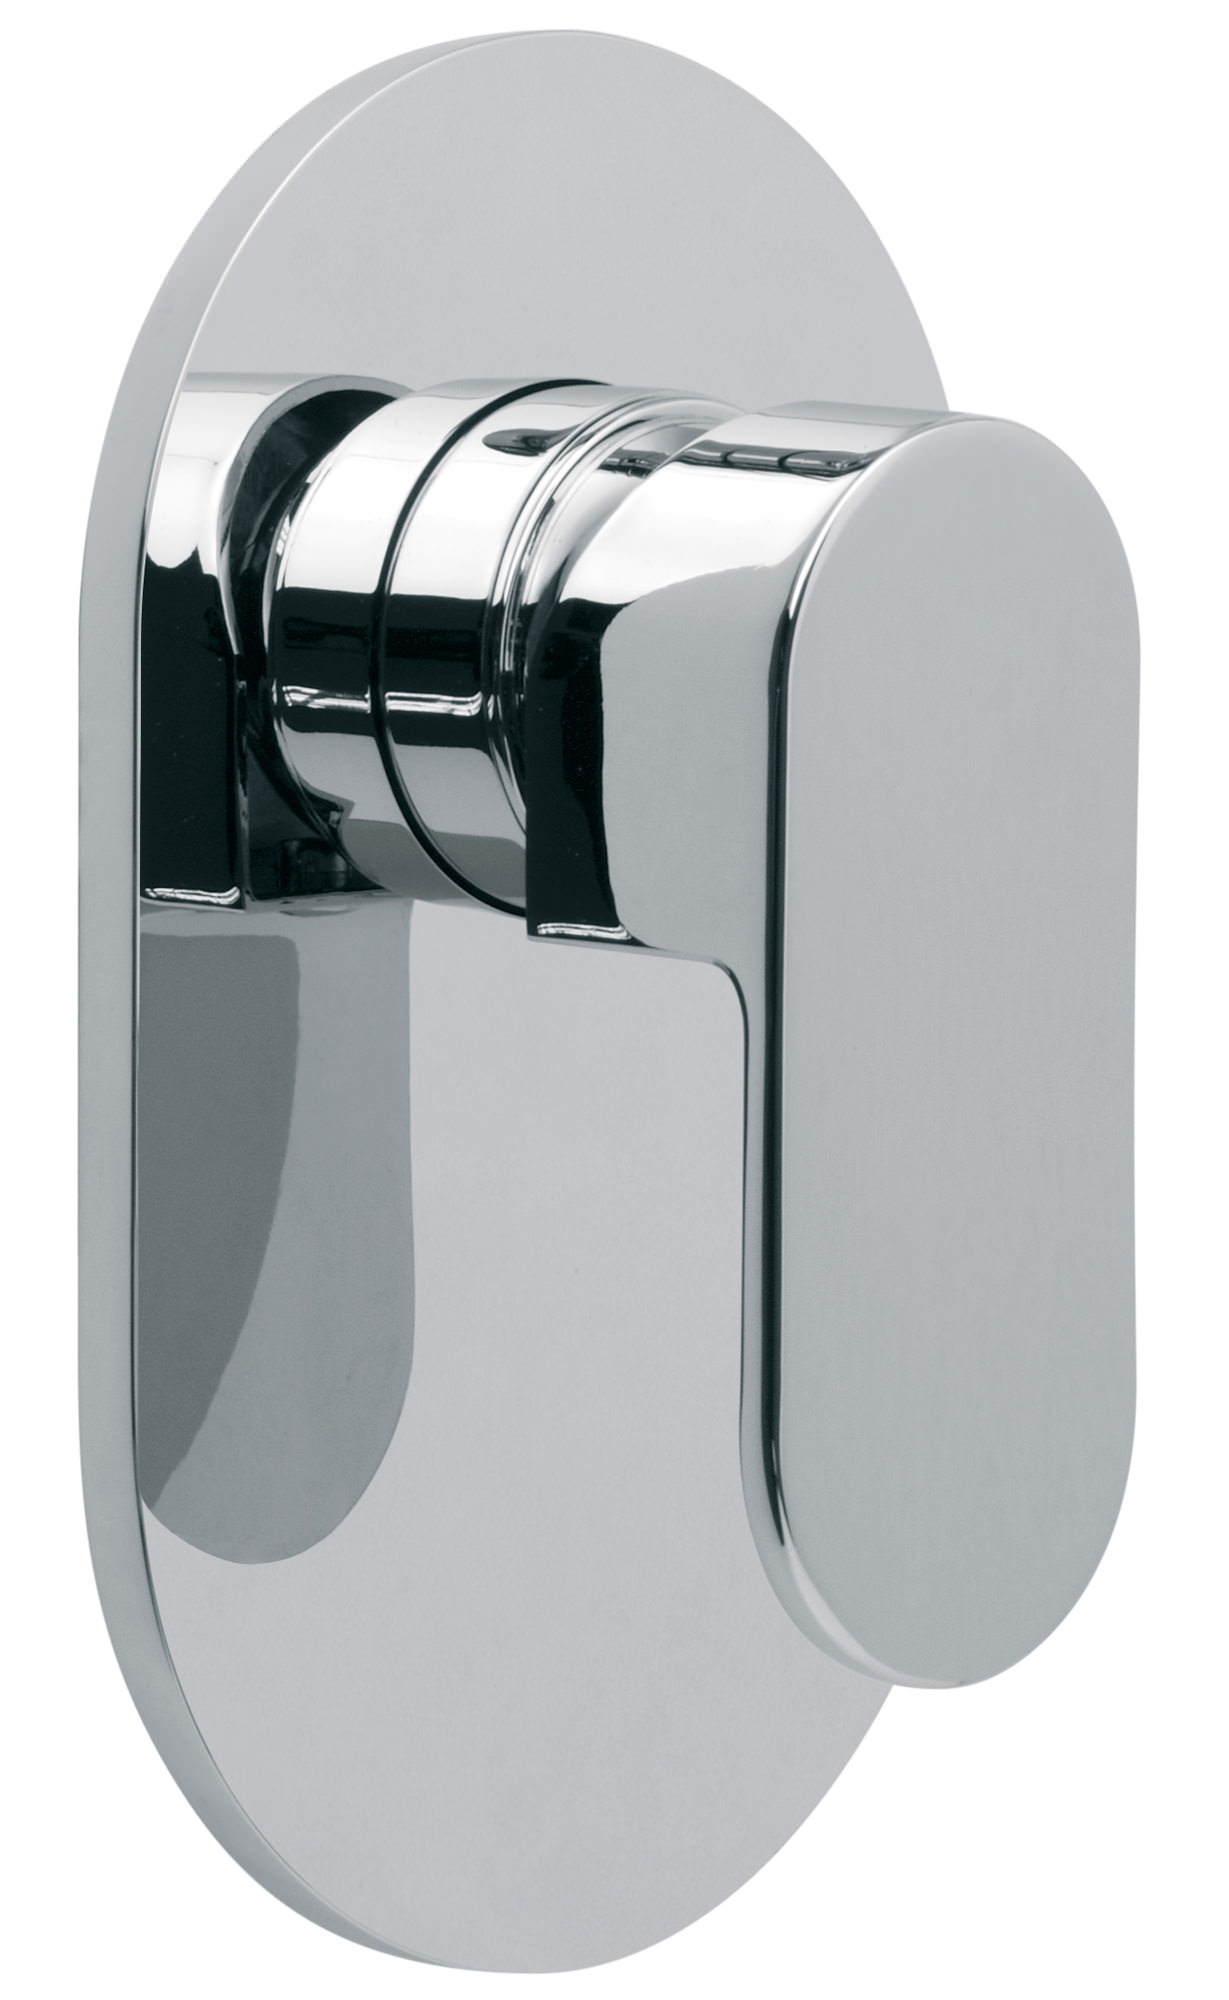 Vado Life Wall Mounted Concealed Manual Shower Valve Shower Taps